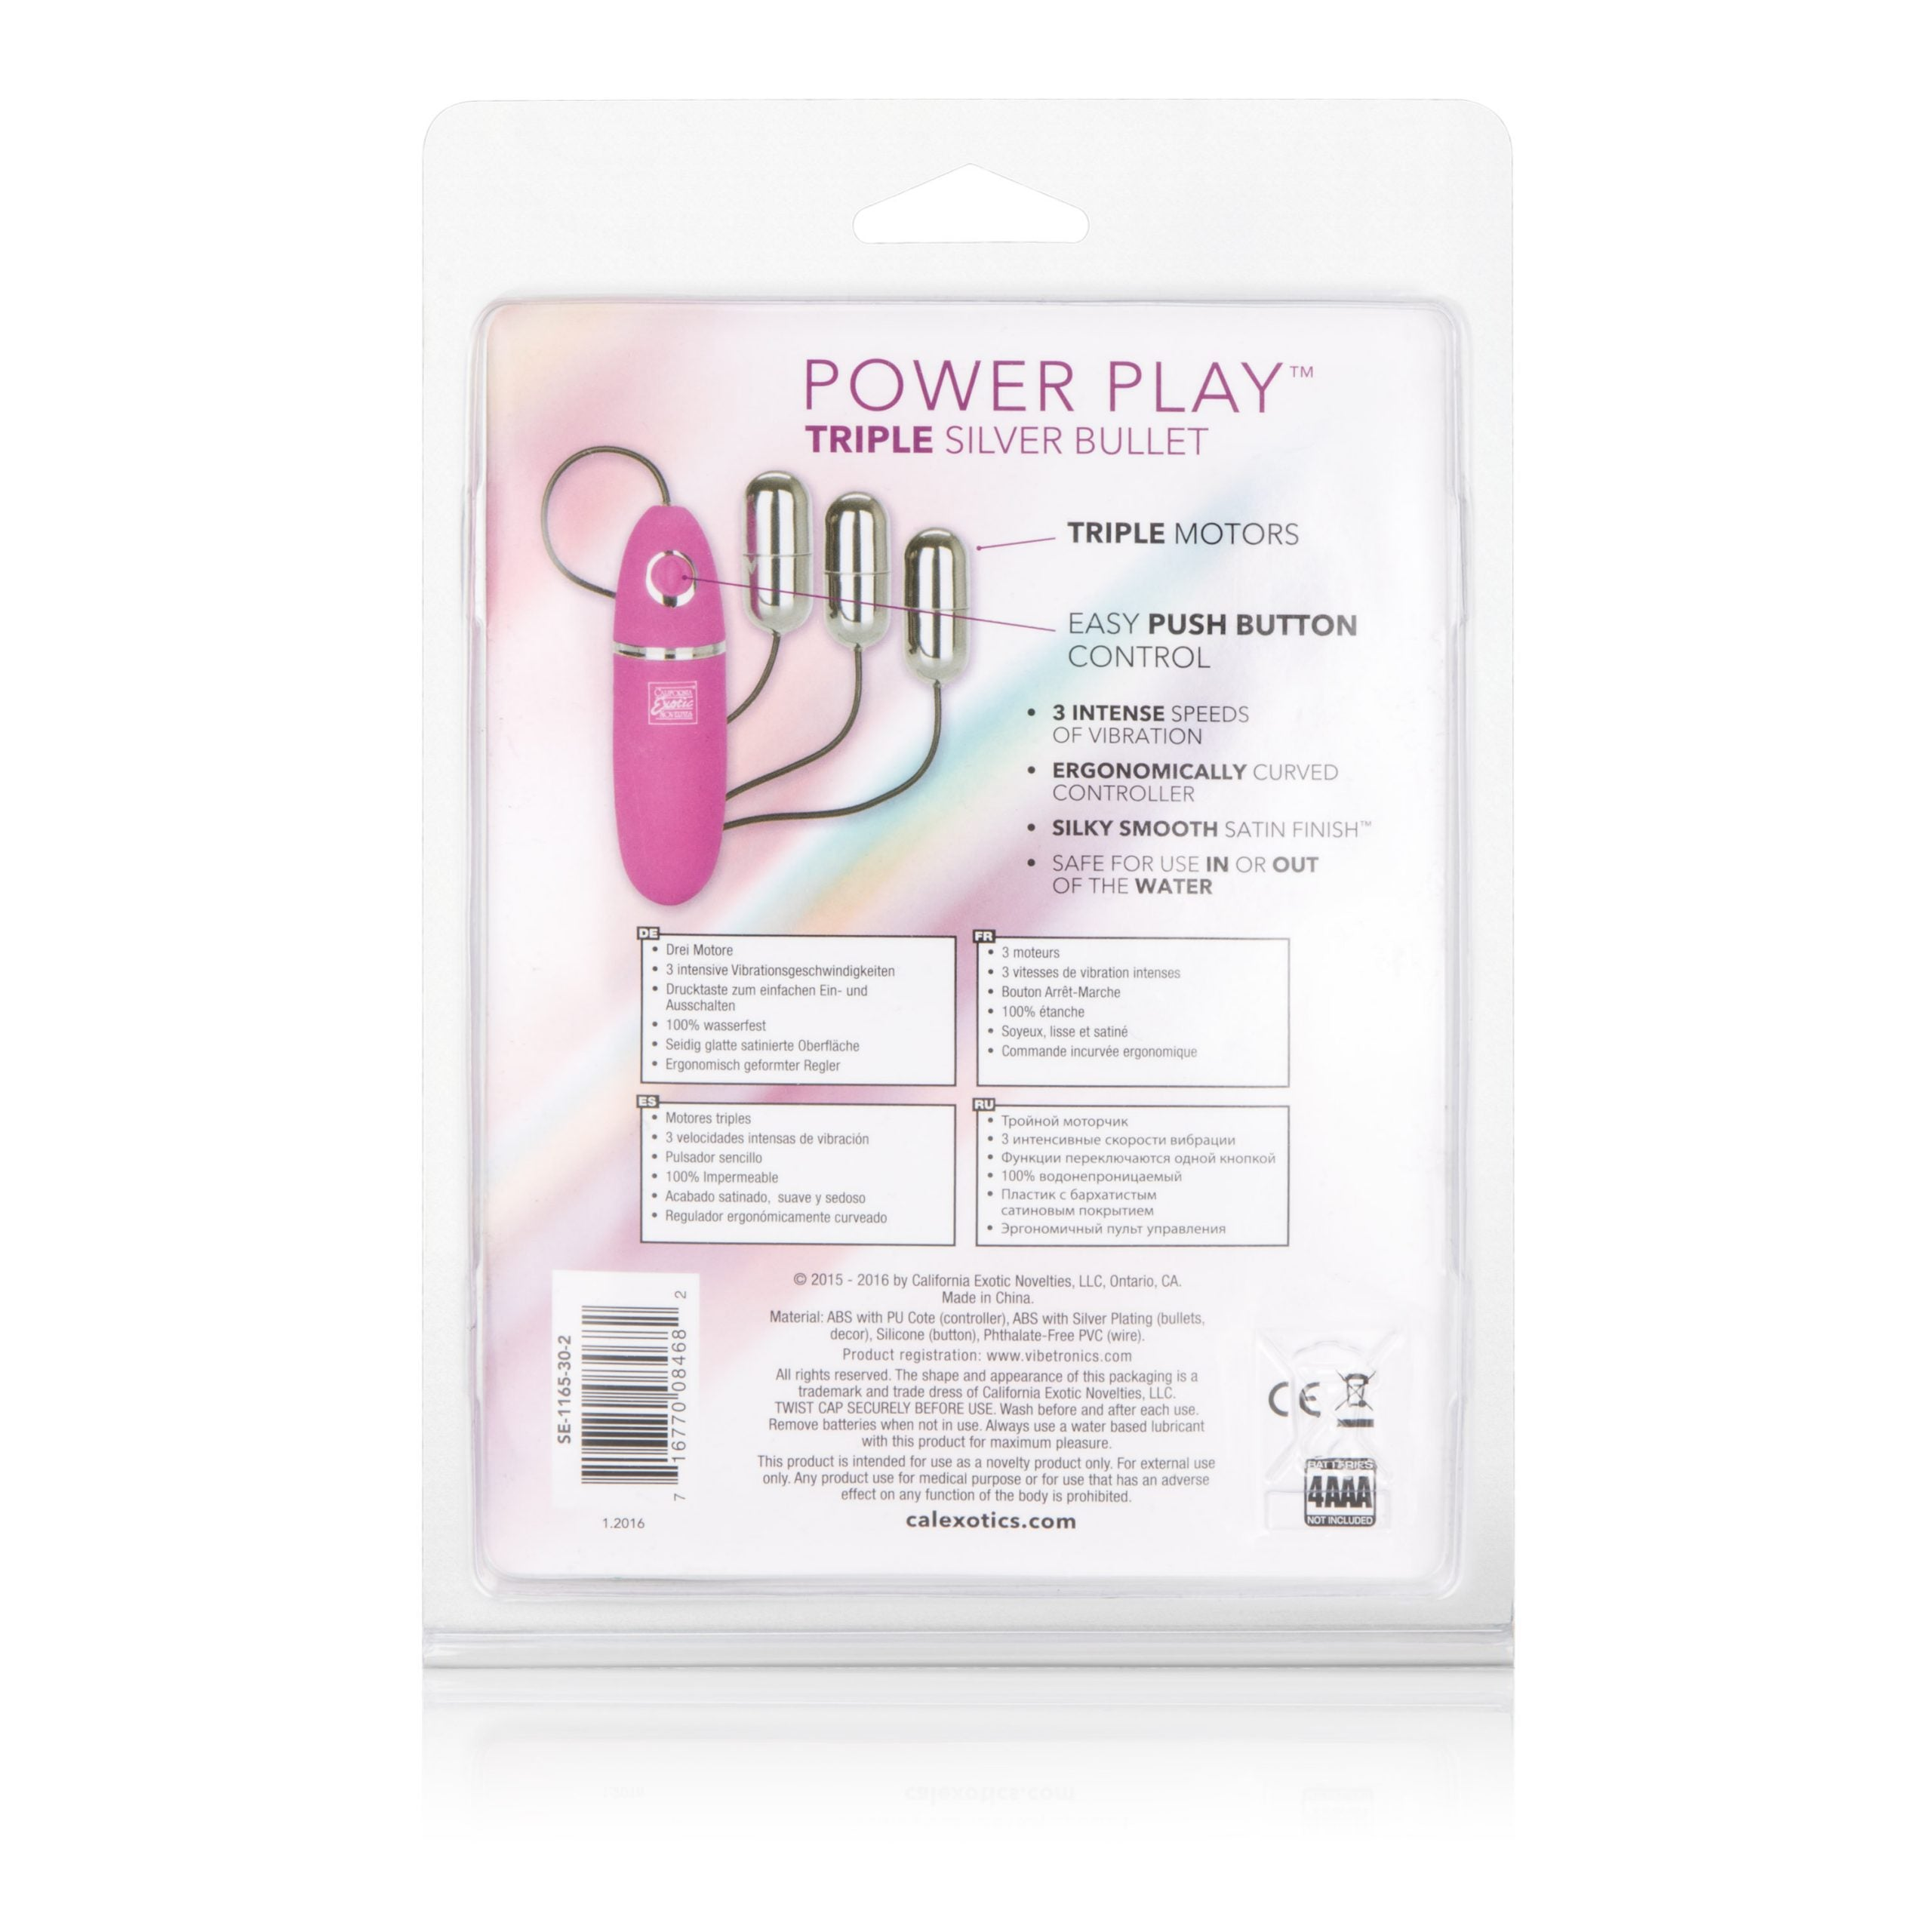 Power Play Triple Silver Bullet - Sexy Nights Deals